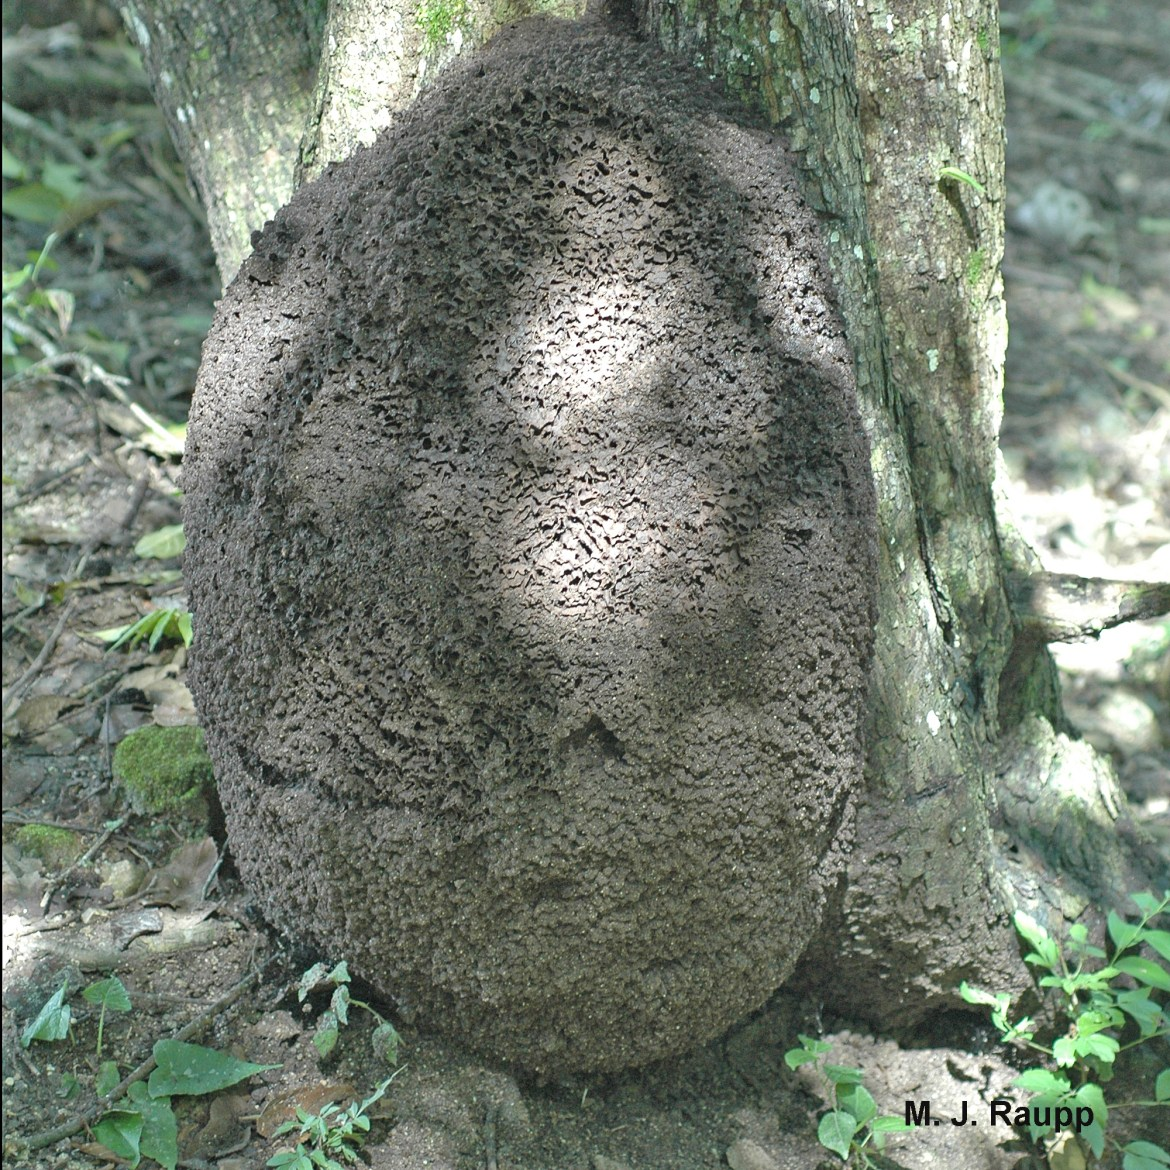 Termite nests like this one at the base of a tree contain thousands of termites.